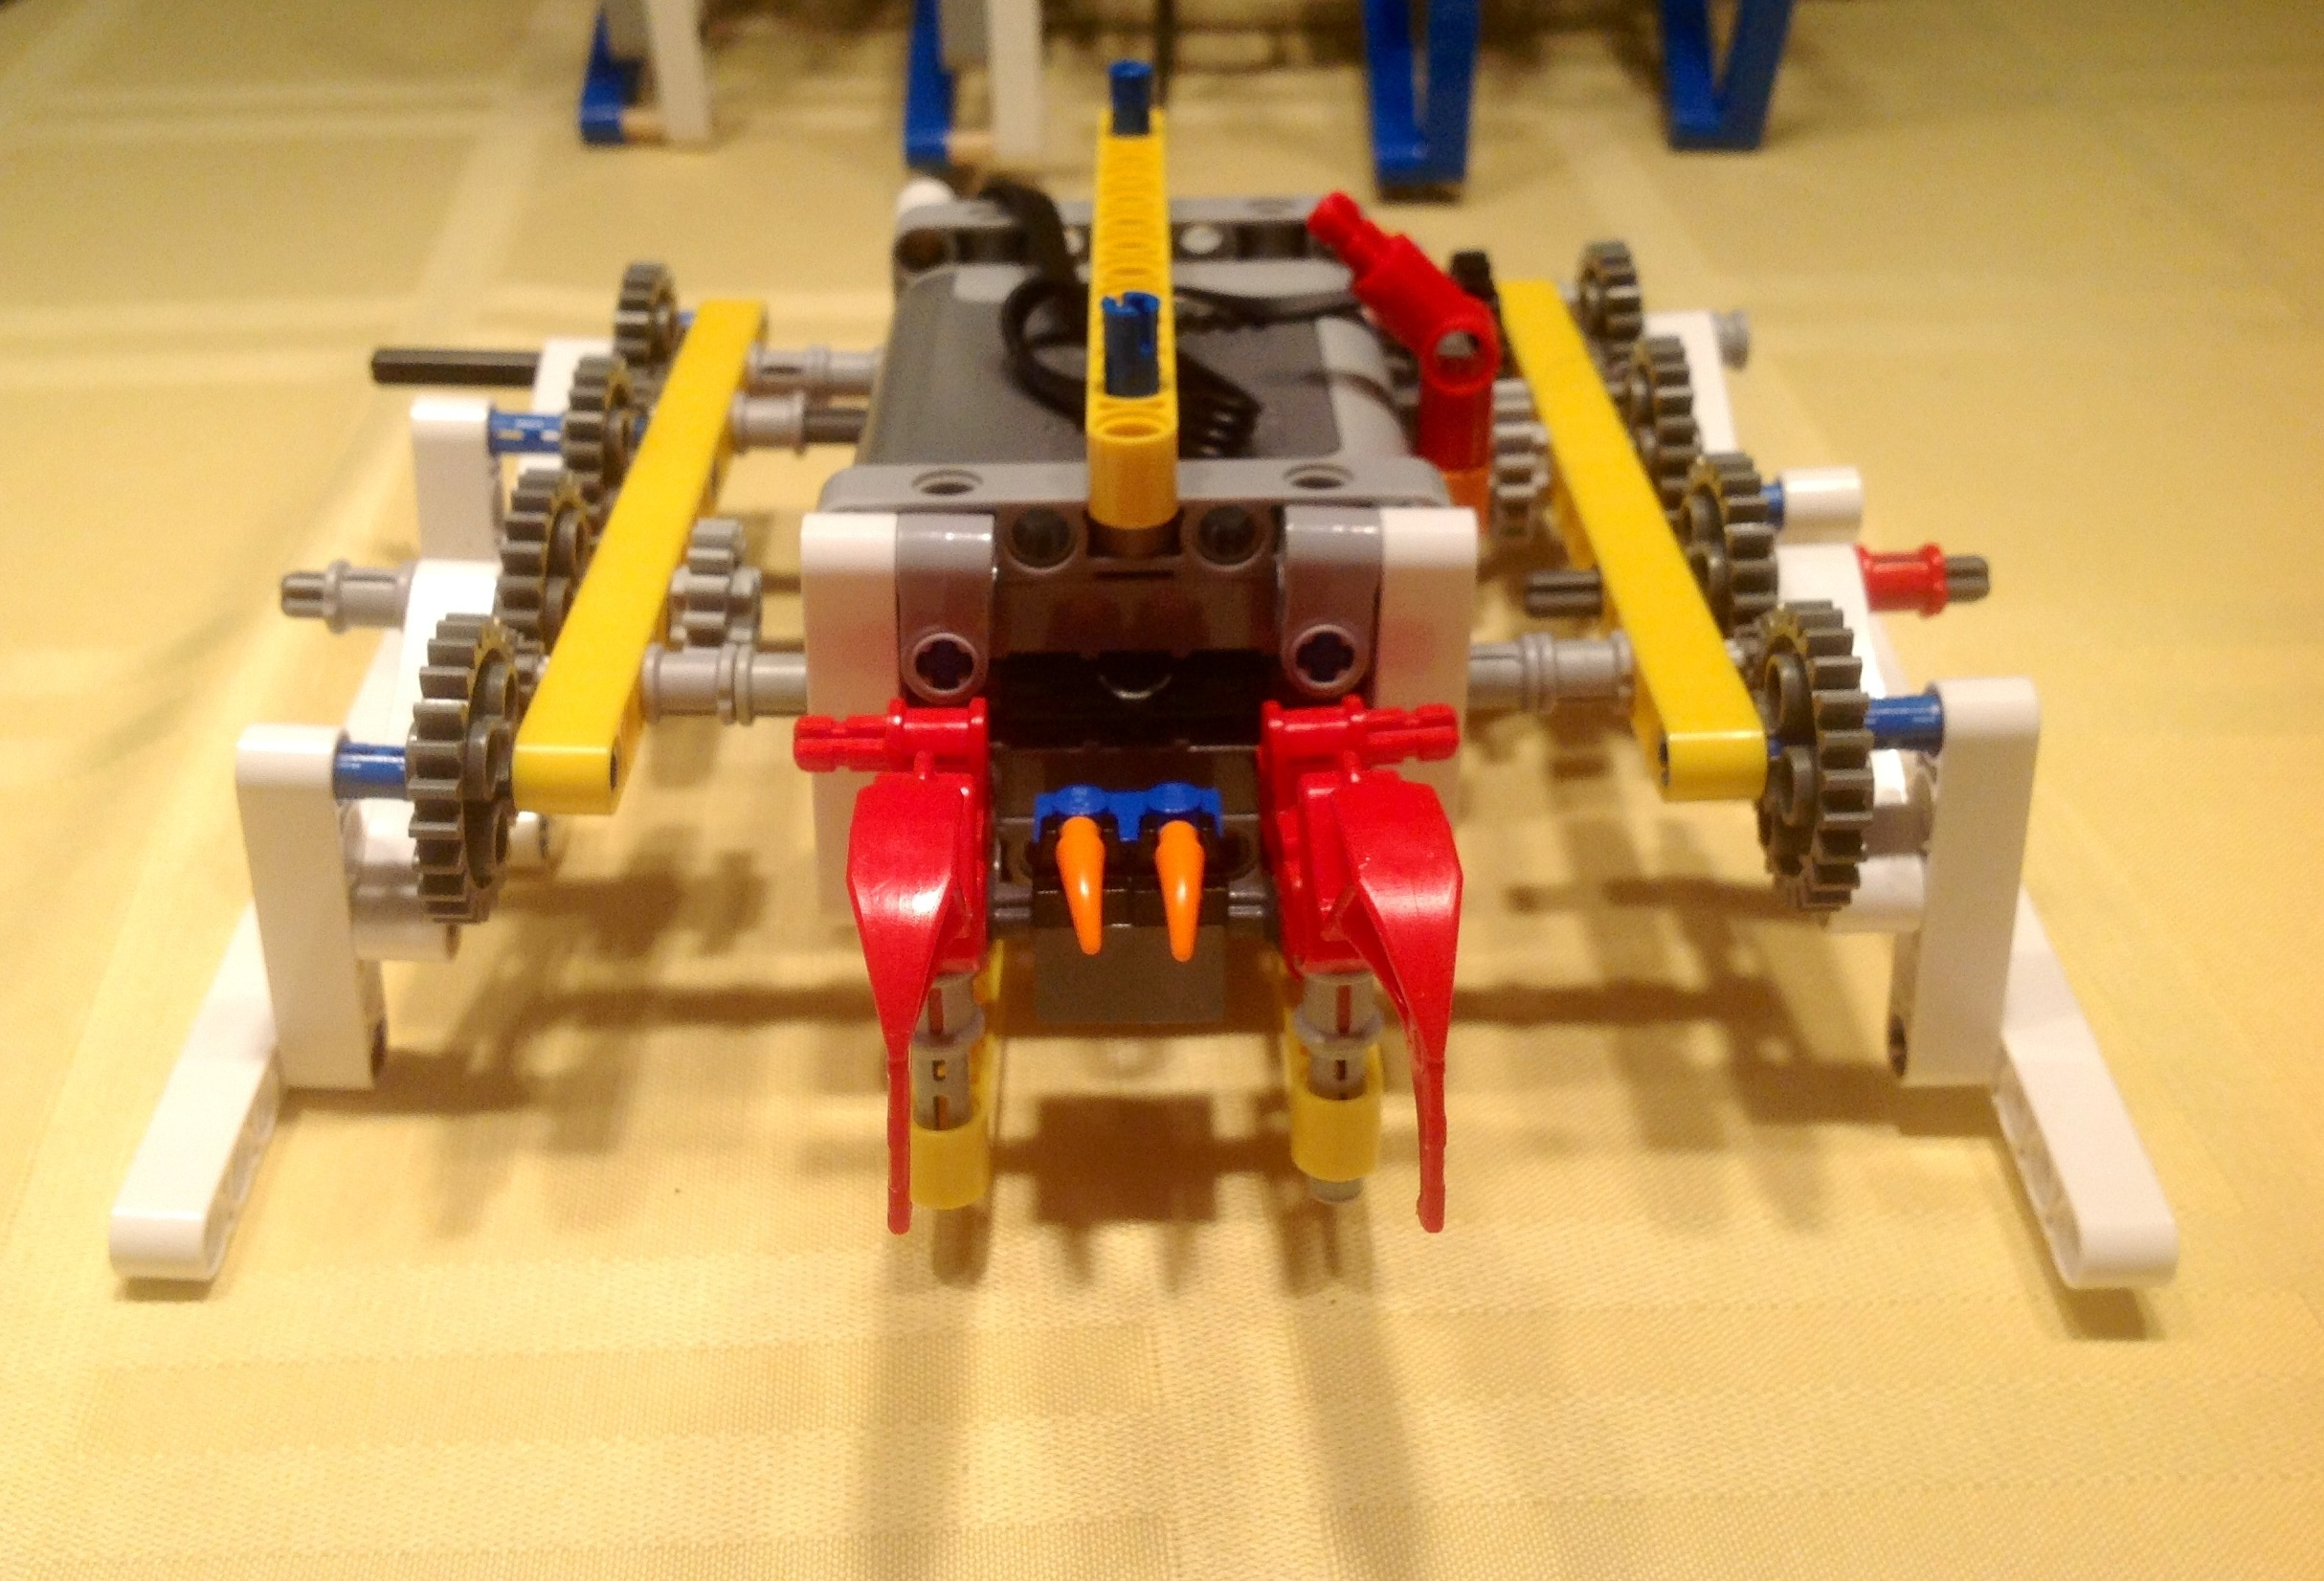 Picture of How to Assemble the Lego Walker